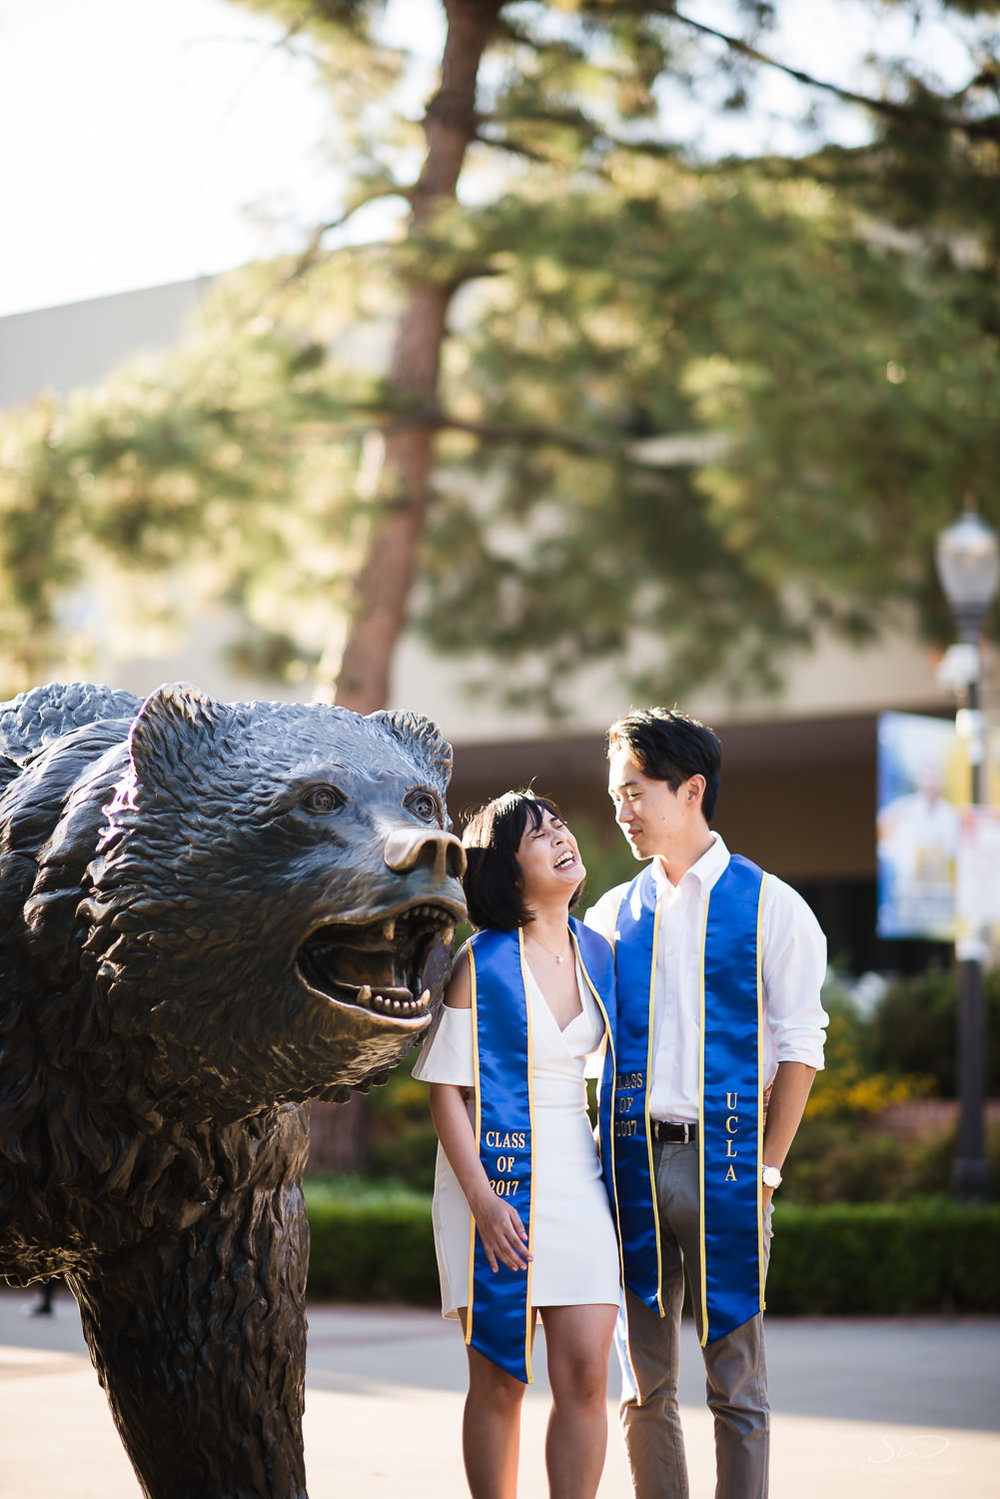 Copy of Copy of college seniors wearing 2017 sashes by the bruin bear  | Stanley Wu Photography | Los Angeles | Graduation Portraits | UCLA, USC, LMU, Pepperdine, CSULA, CSUN, CSULB, UCI, UCSD